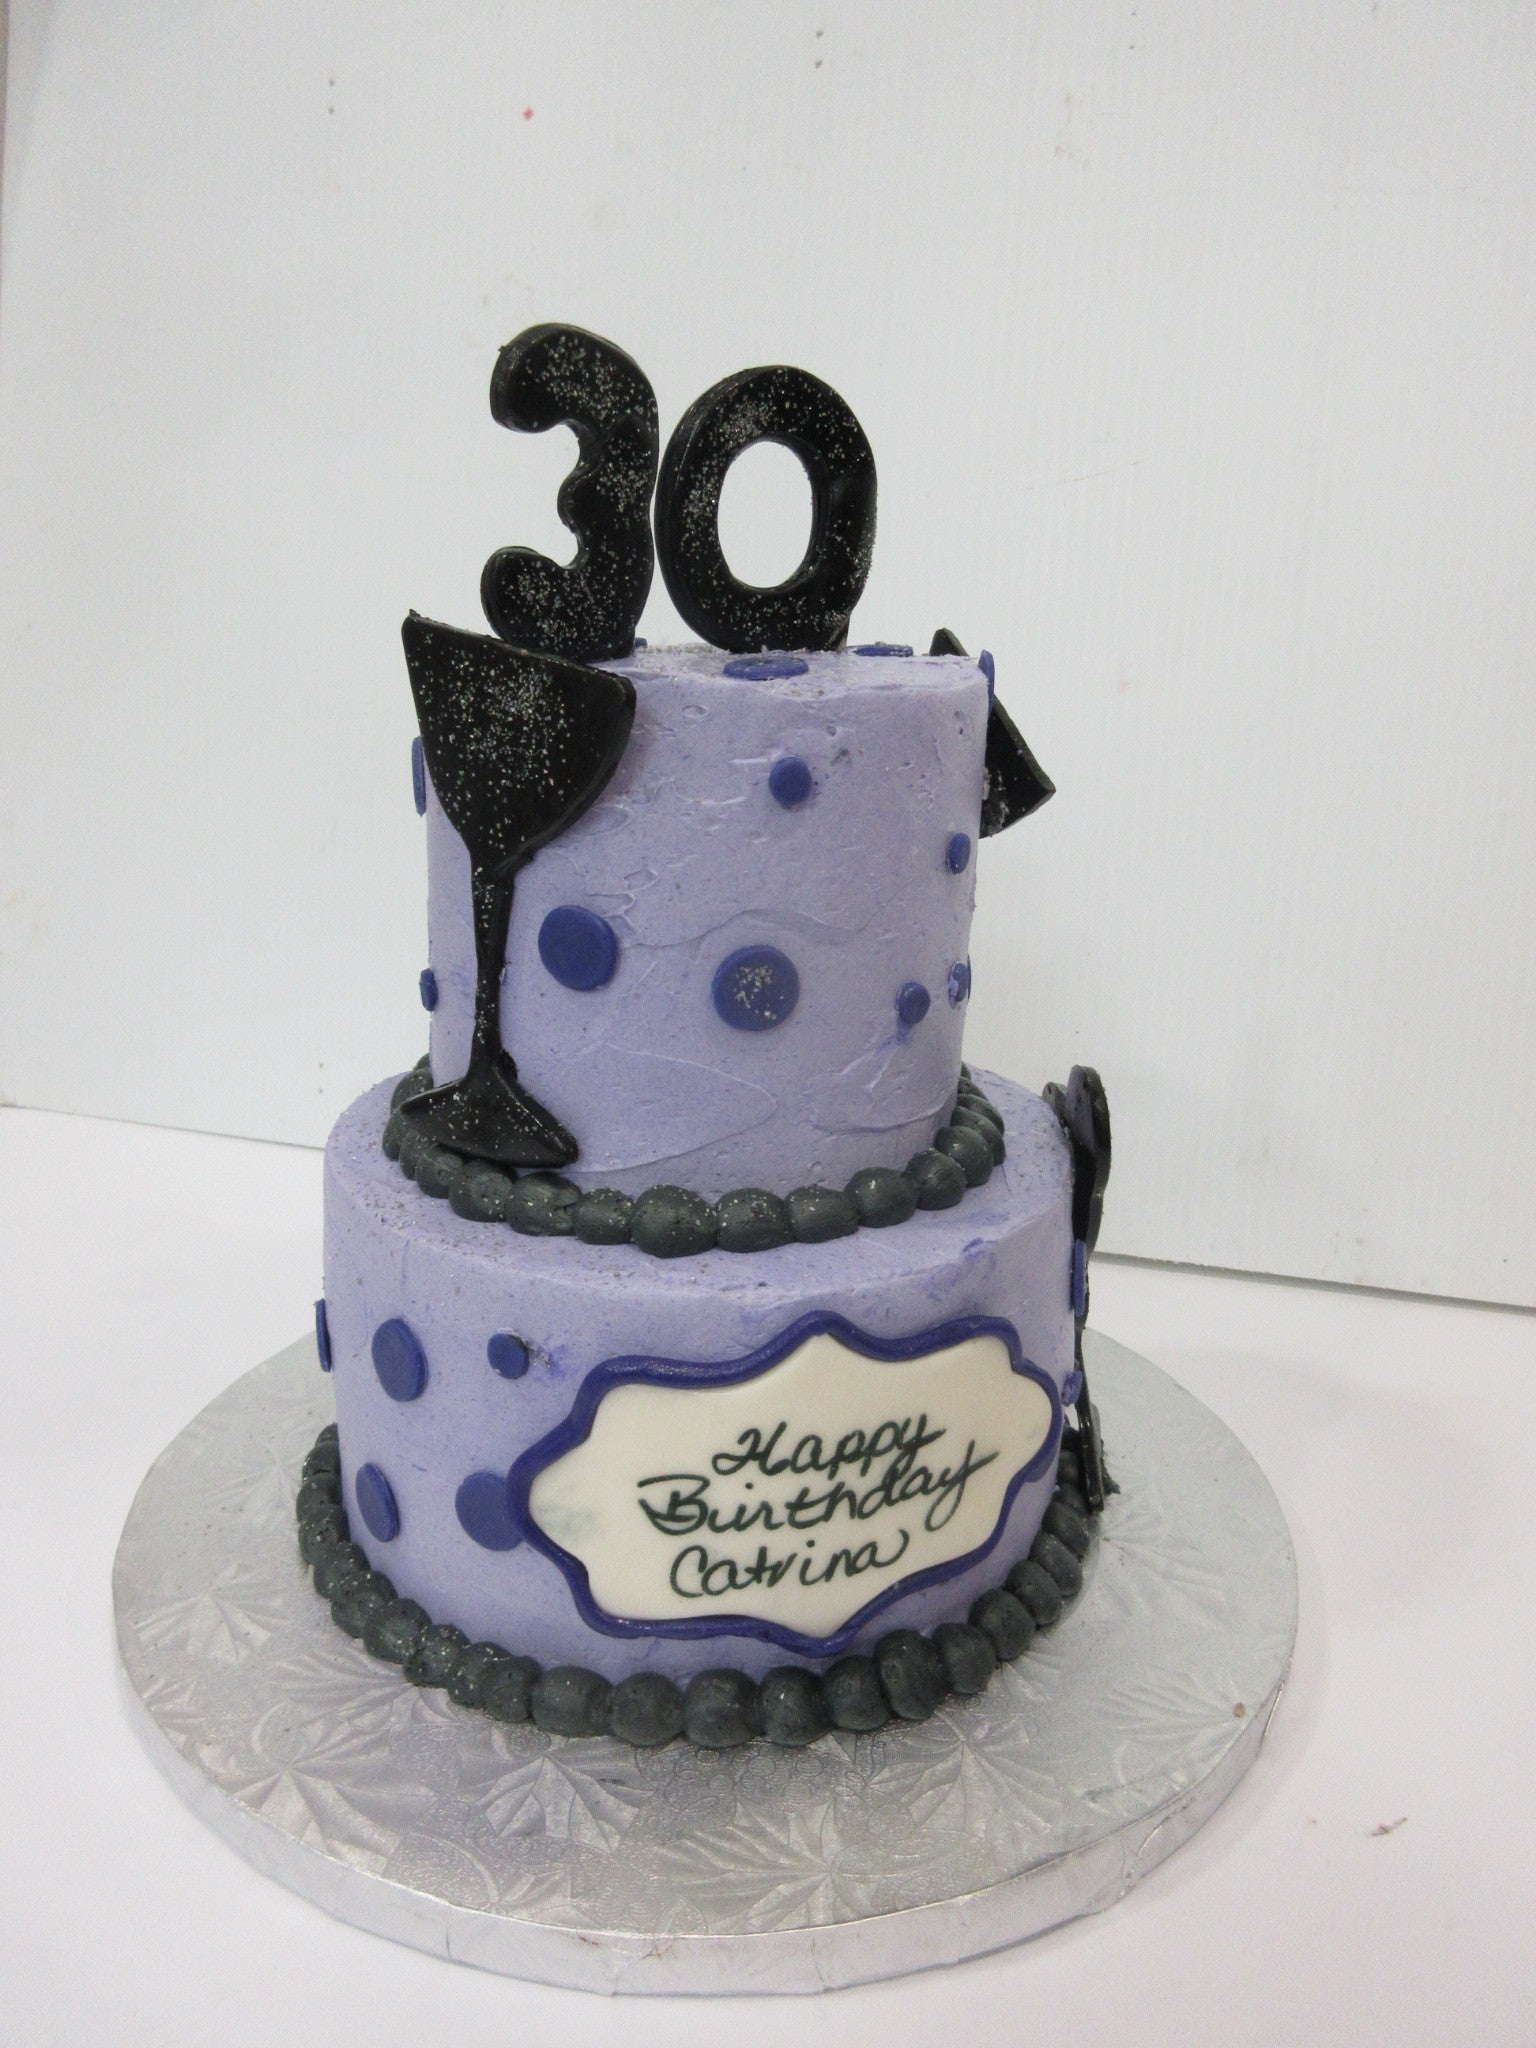 2-tier Buttercream cake with fondant accents